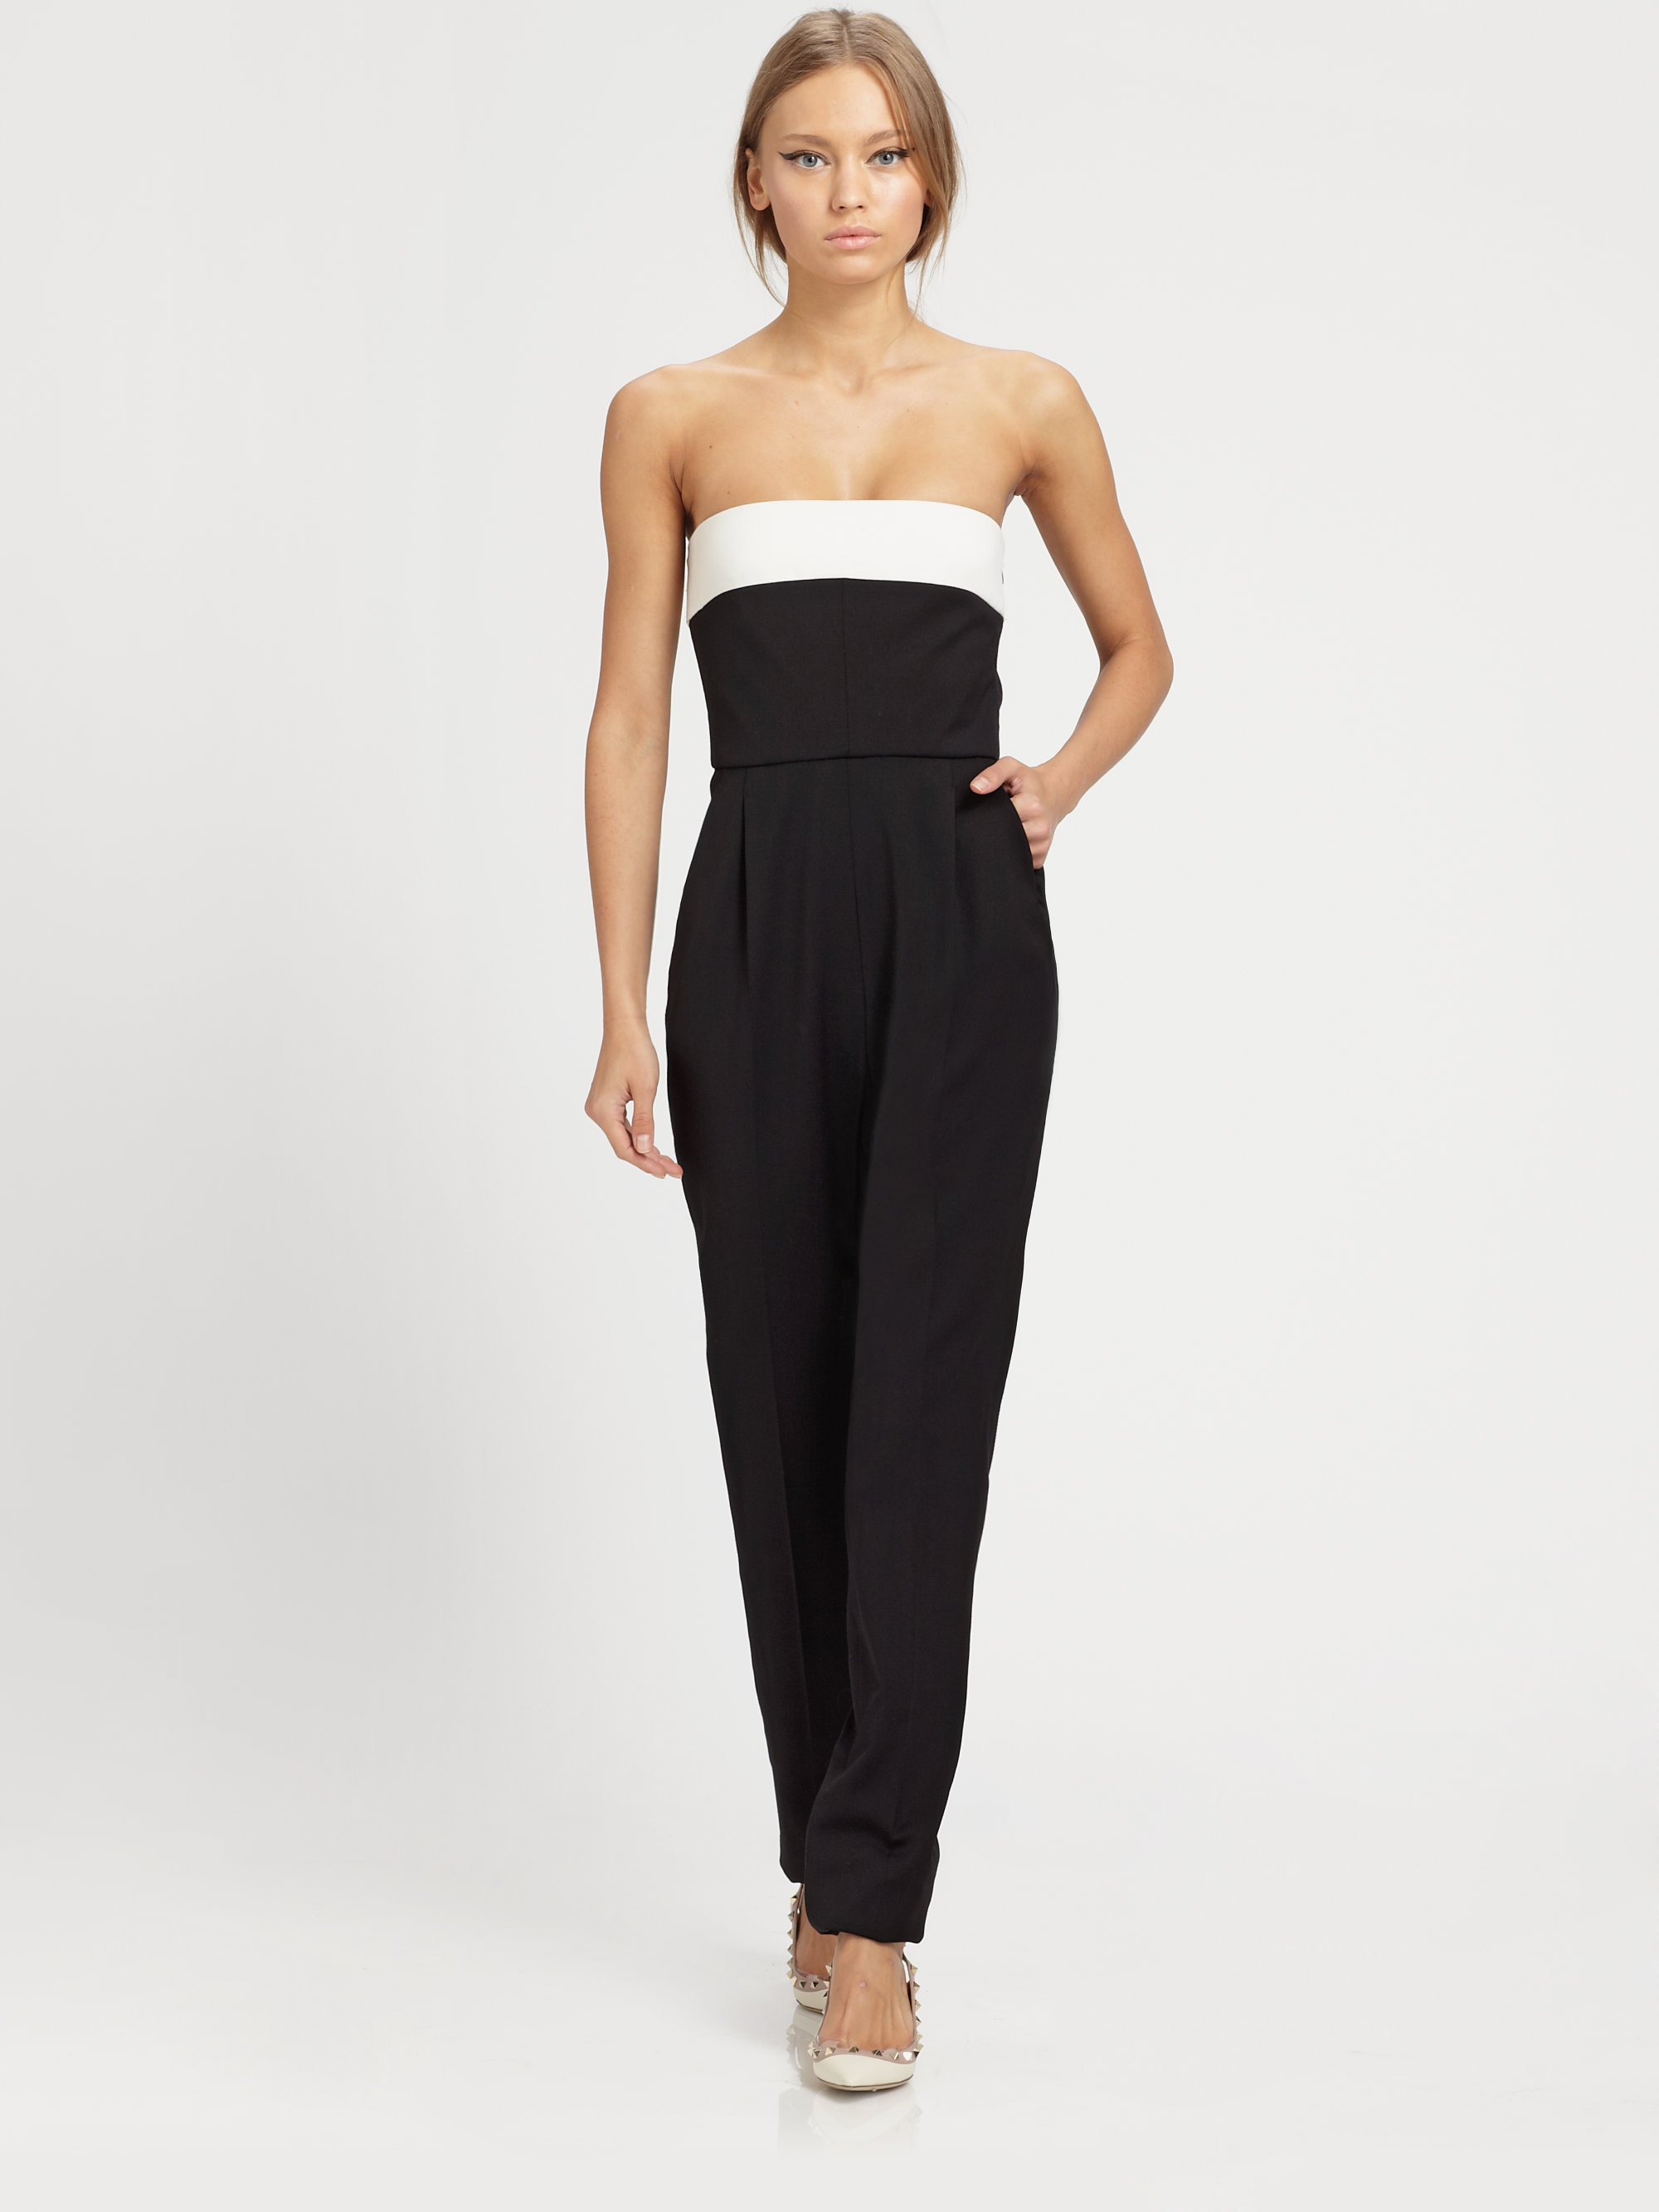 Lyst - Valentino Strapless Bowback Silk Jumpsuit in Black